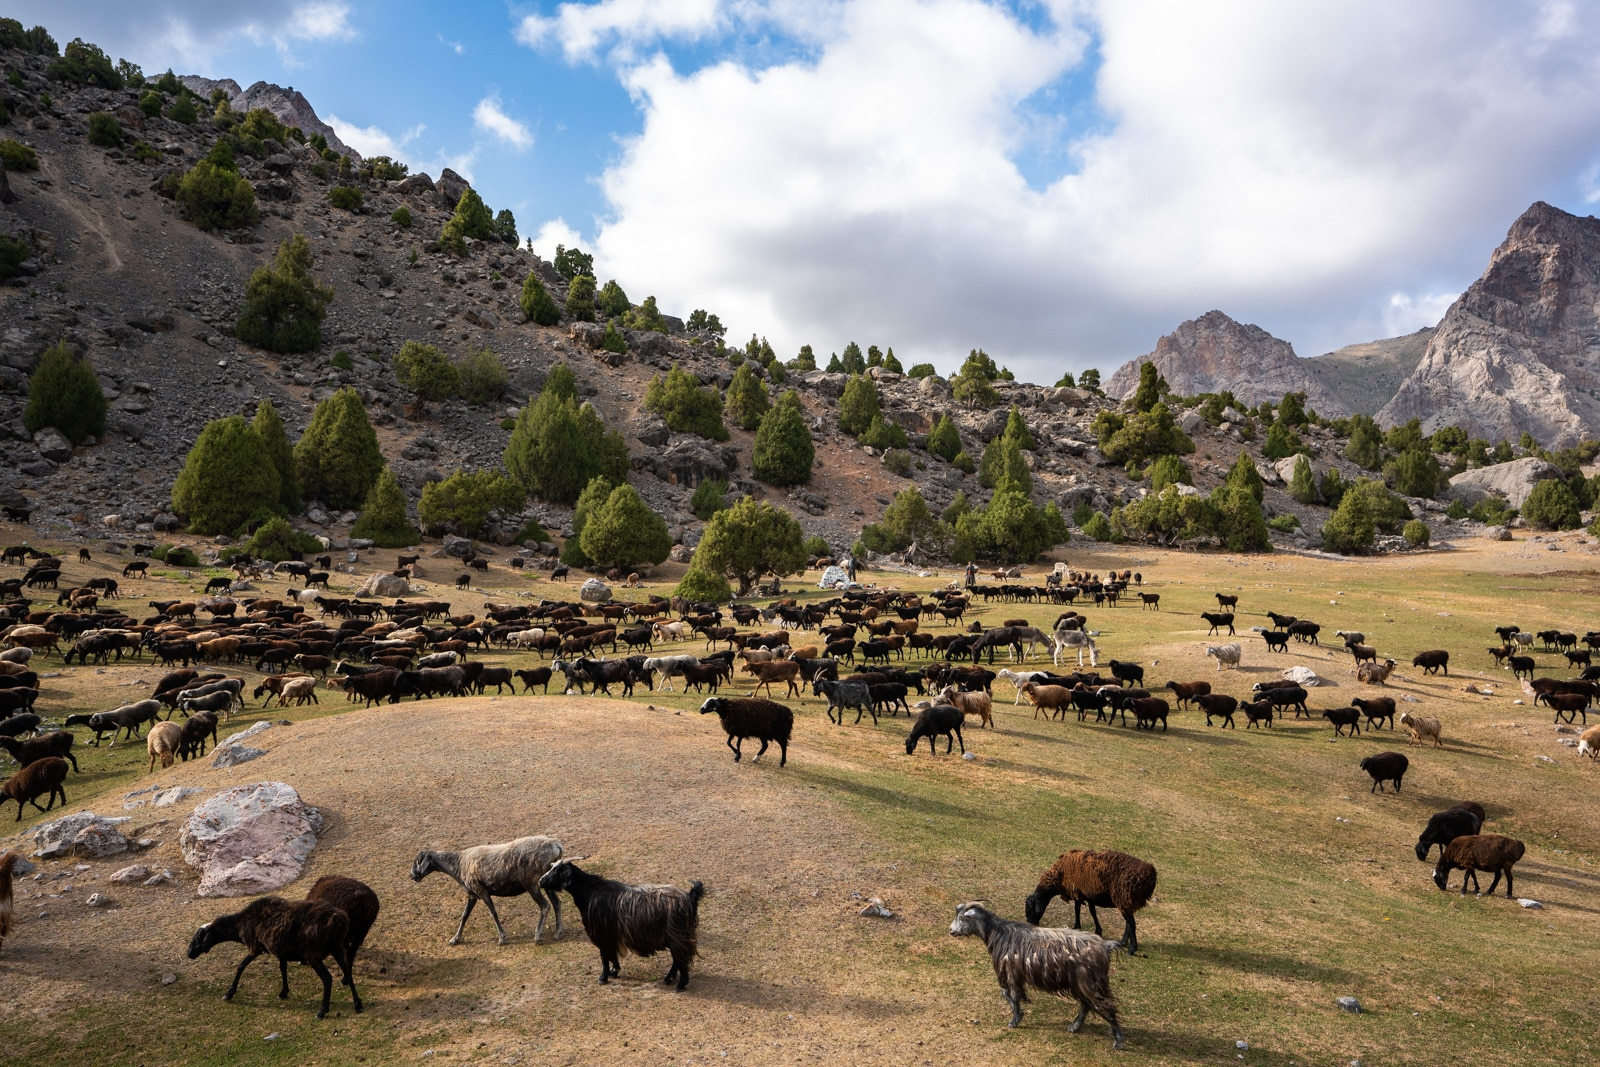 Herd of sheep and goats in Tajikistan